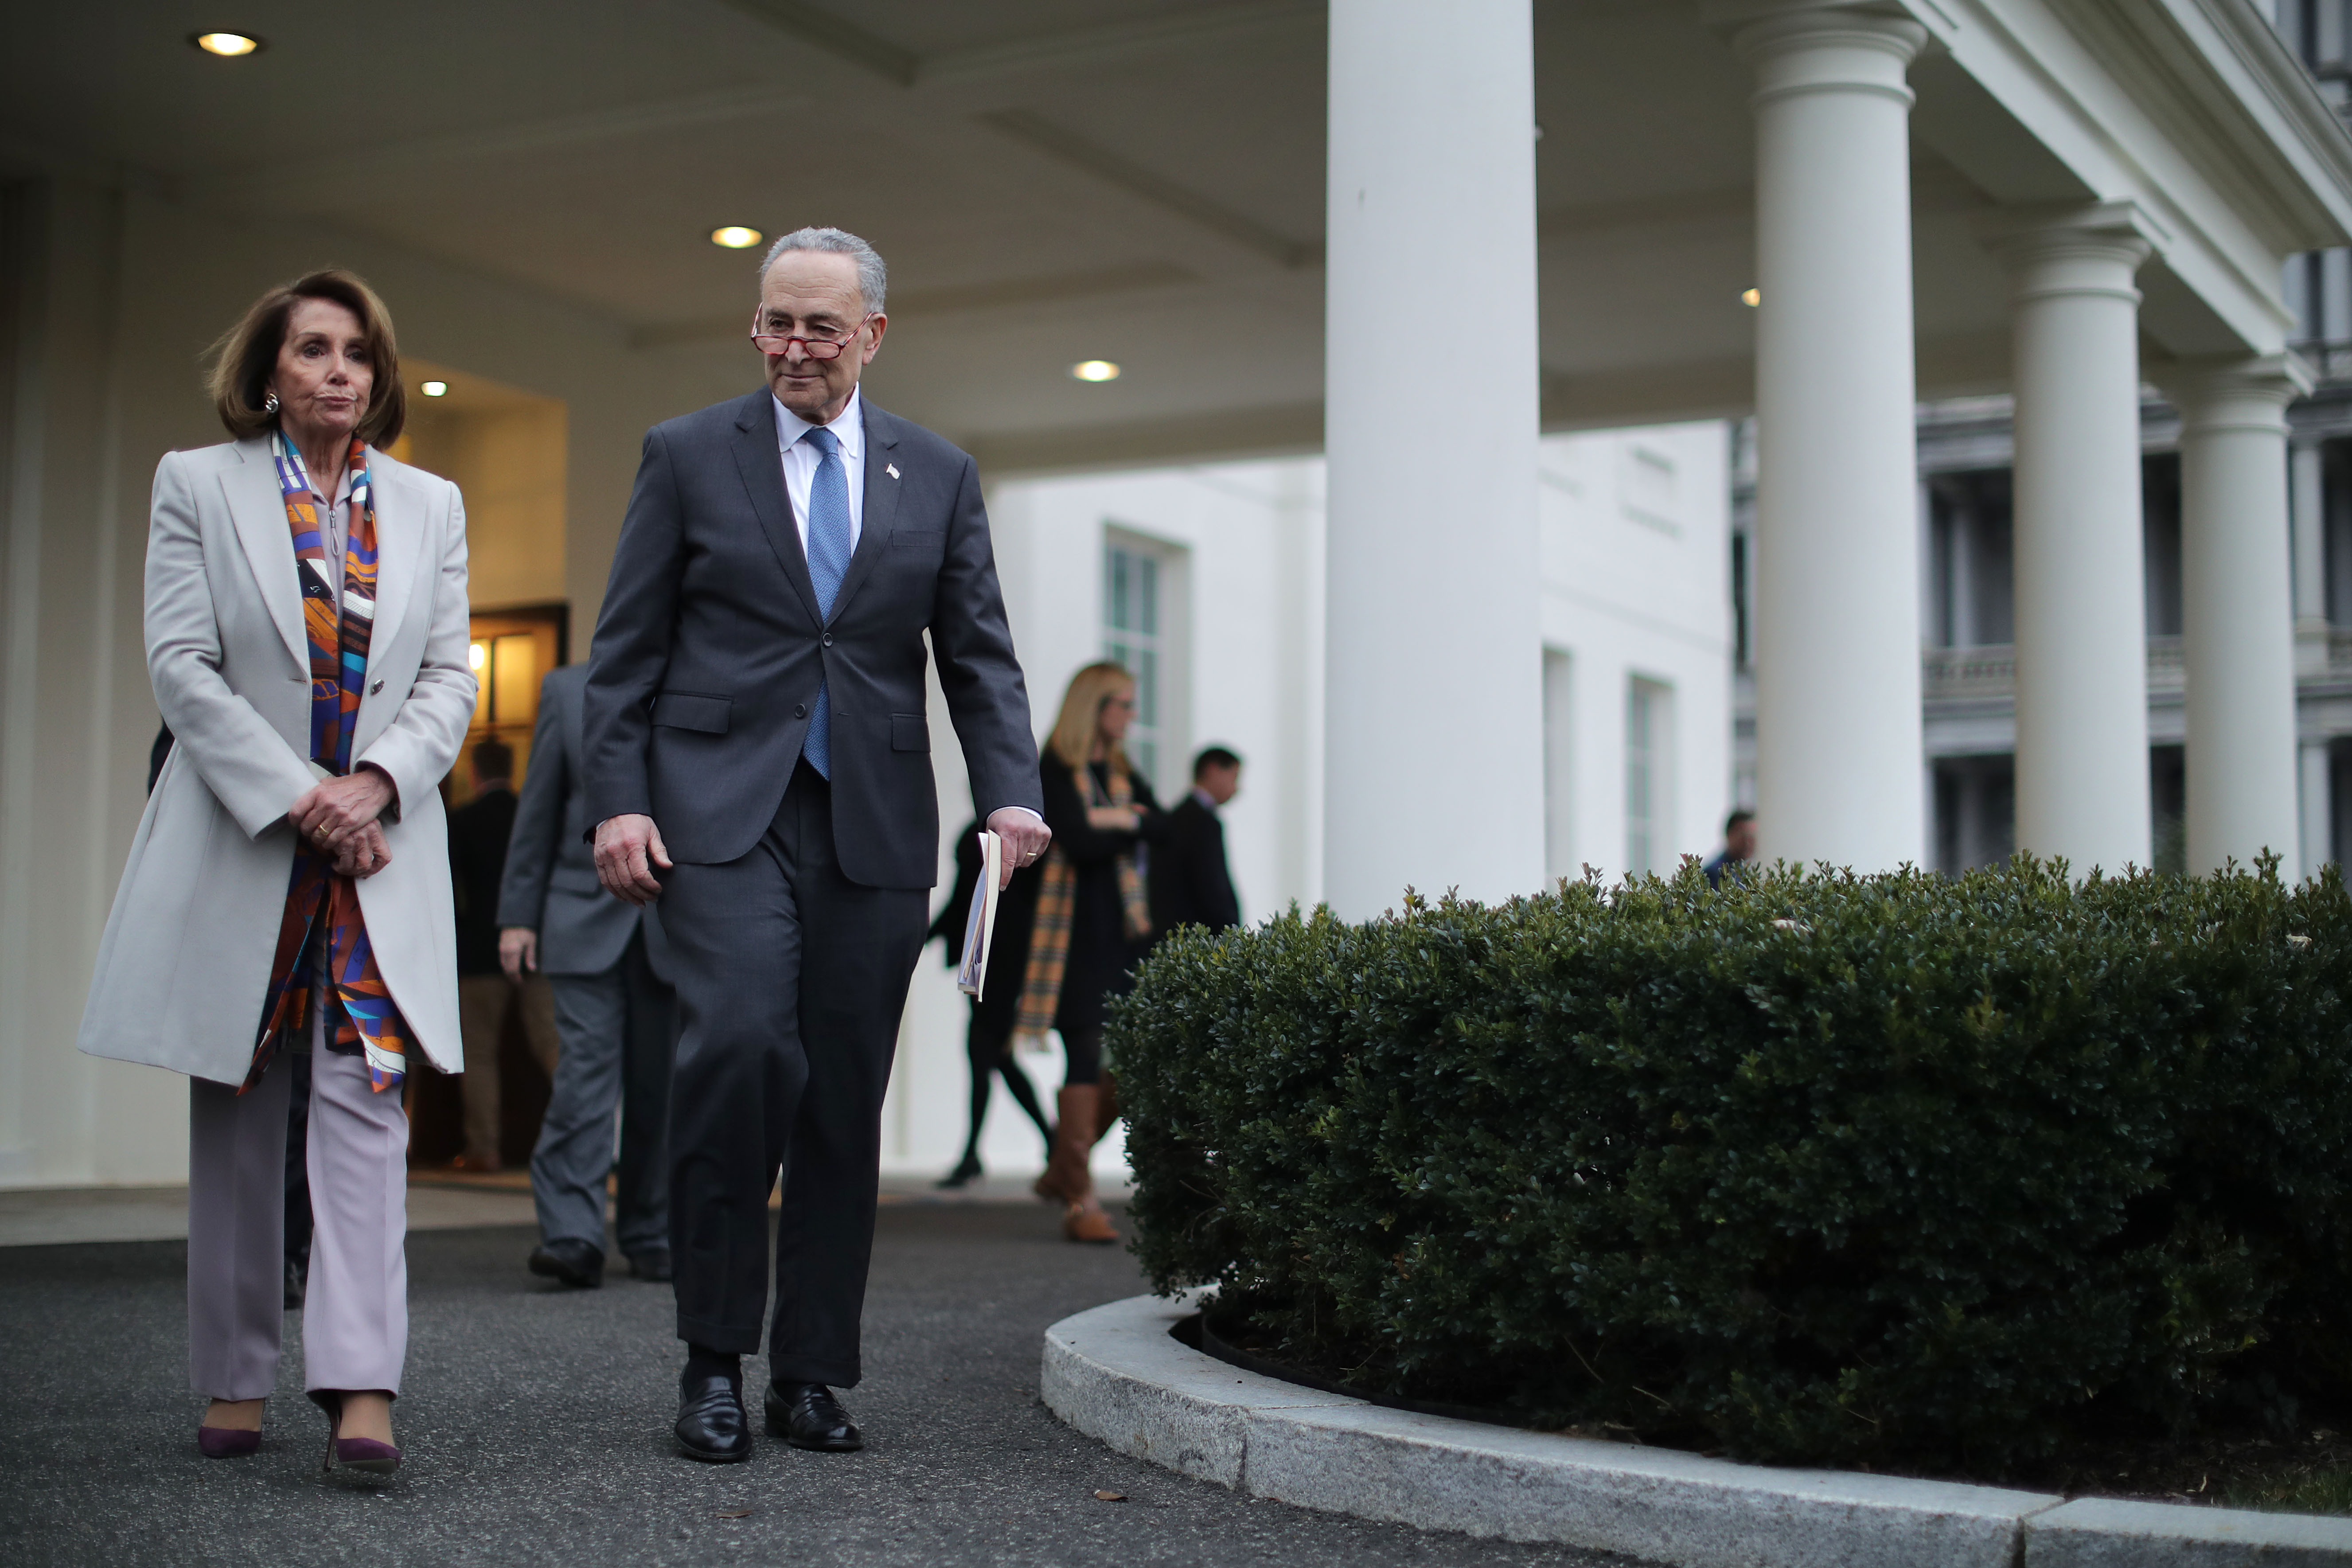 Democratic leaders Nancy Pelosi and Chuck Schumer leave the White House following a meeting with Trump on Wednesday.